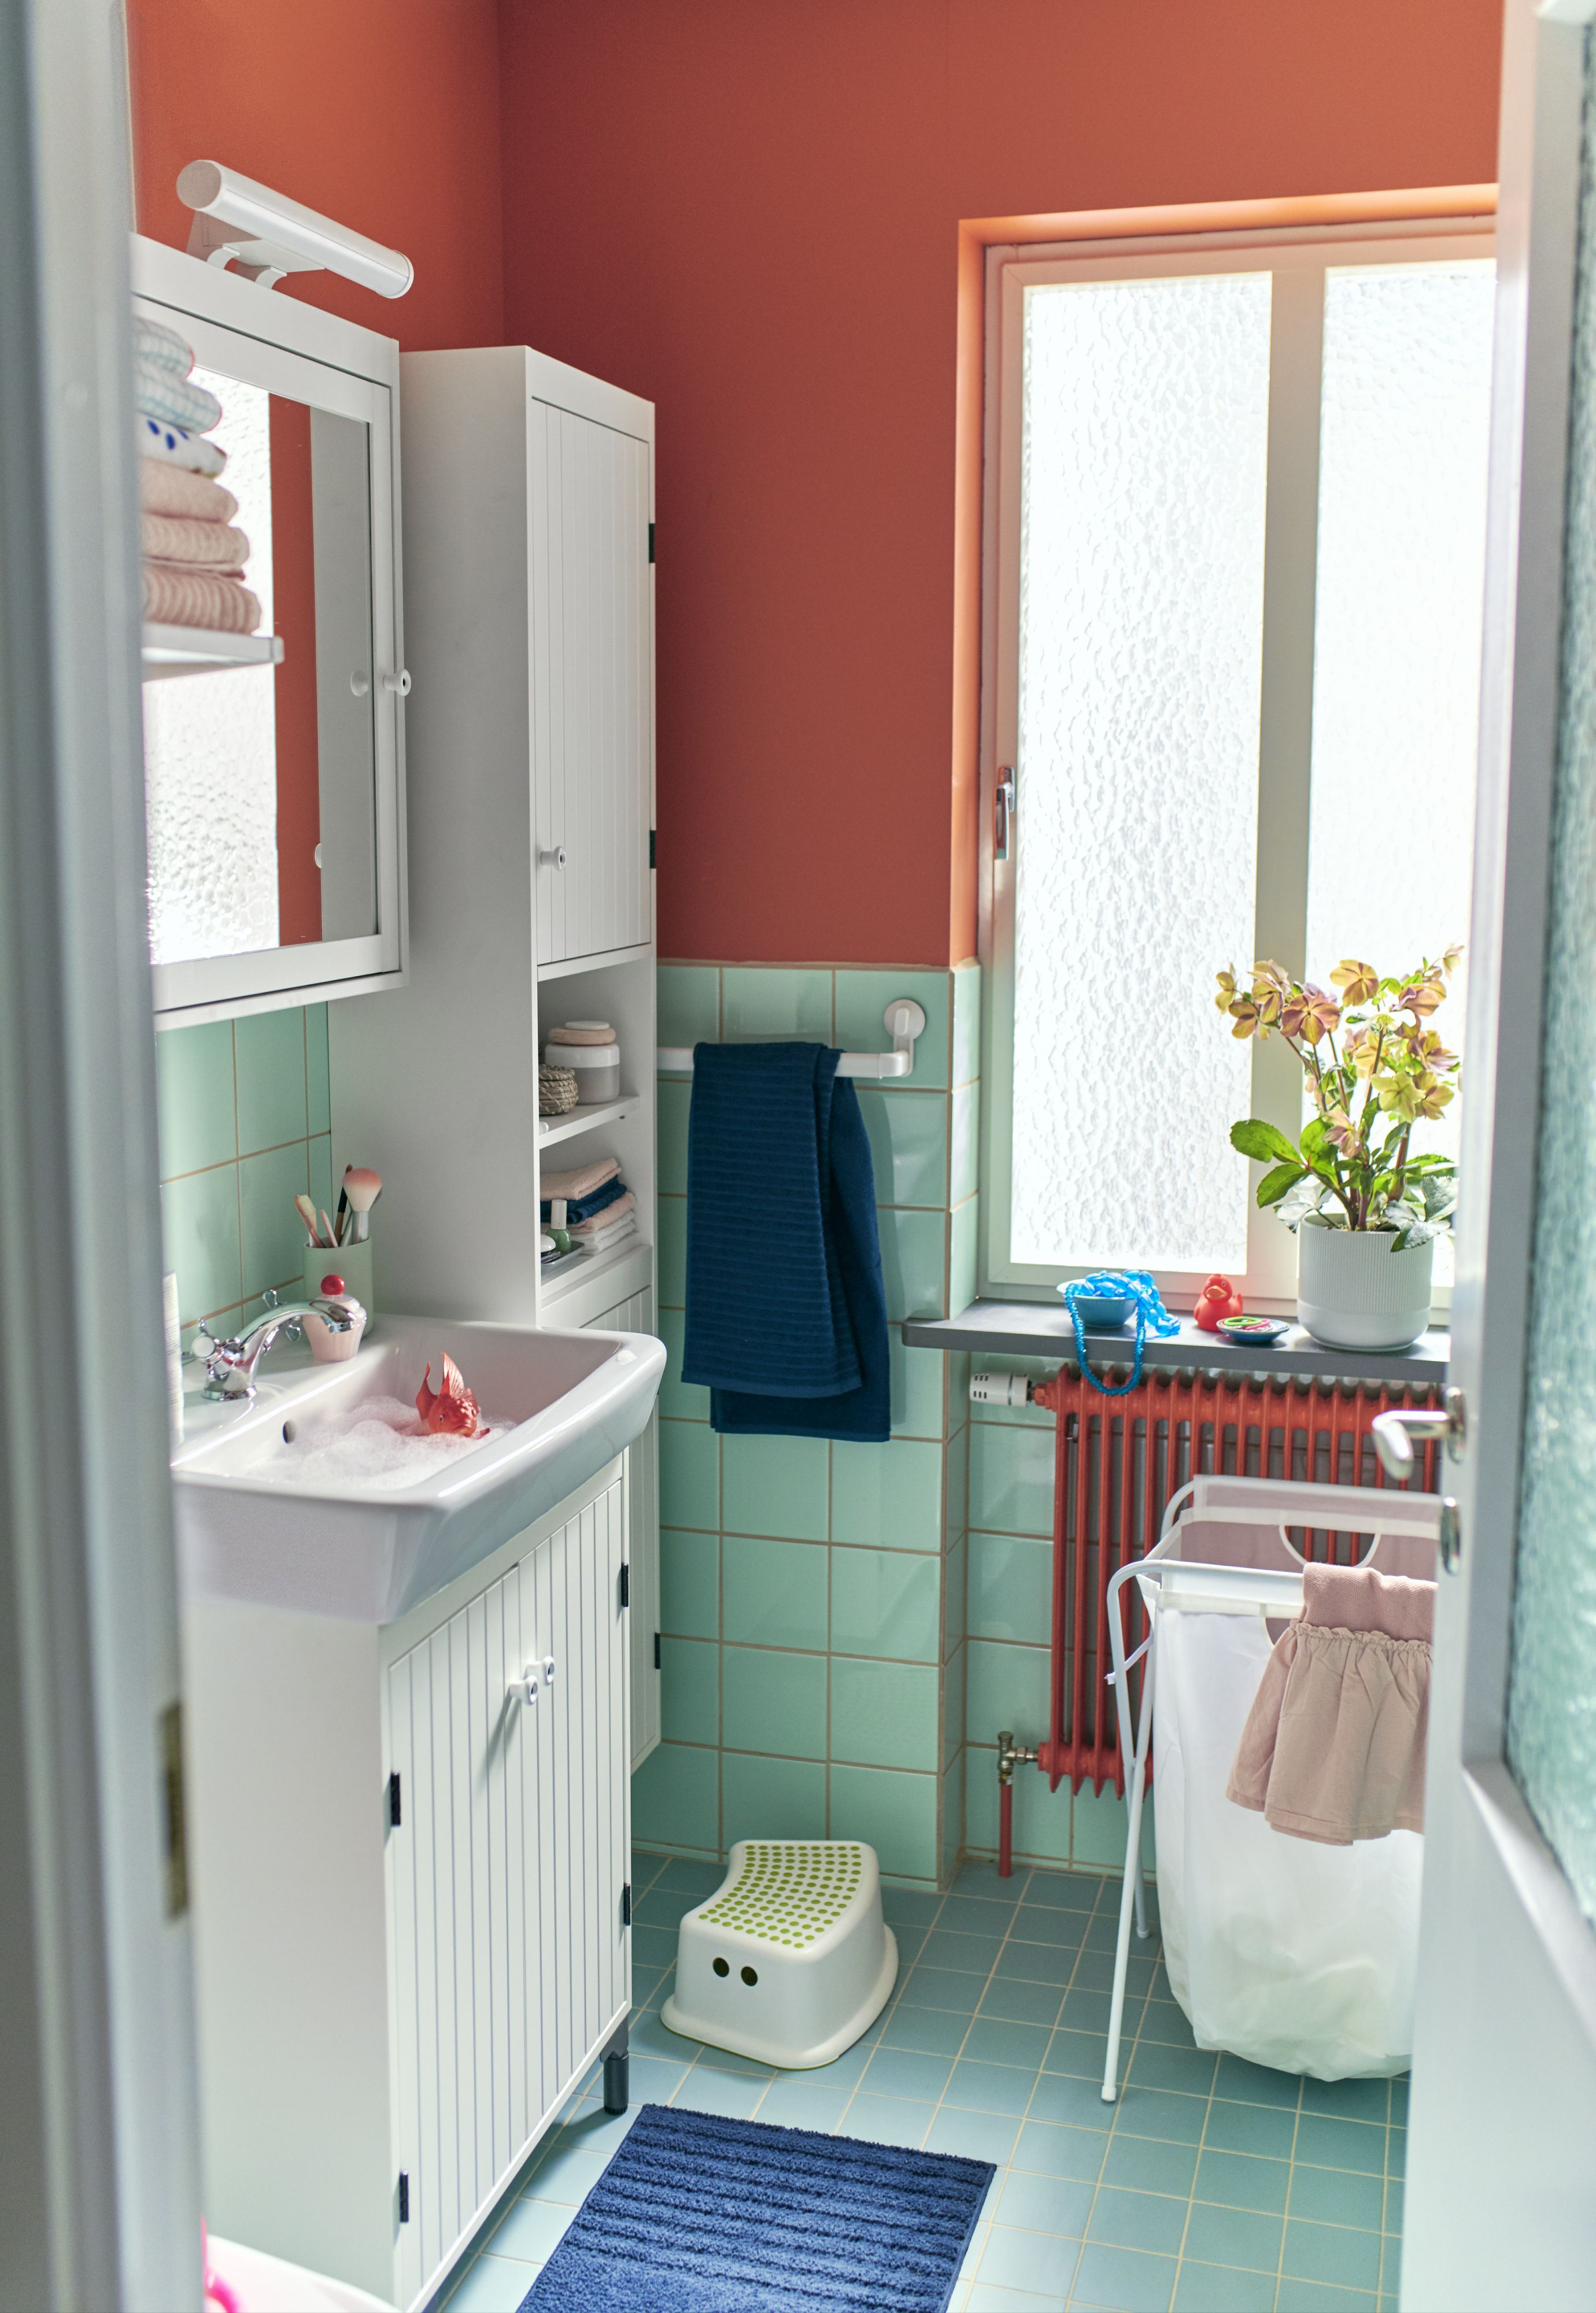 Maximize a small bathroom with both high and low storage